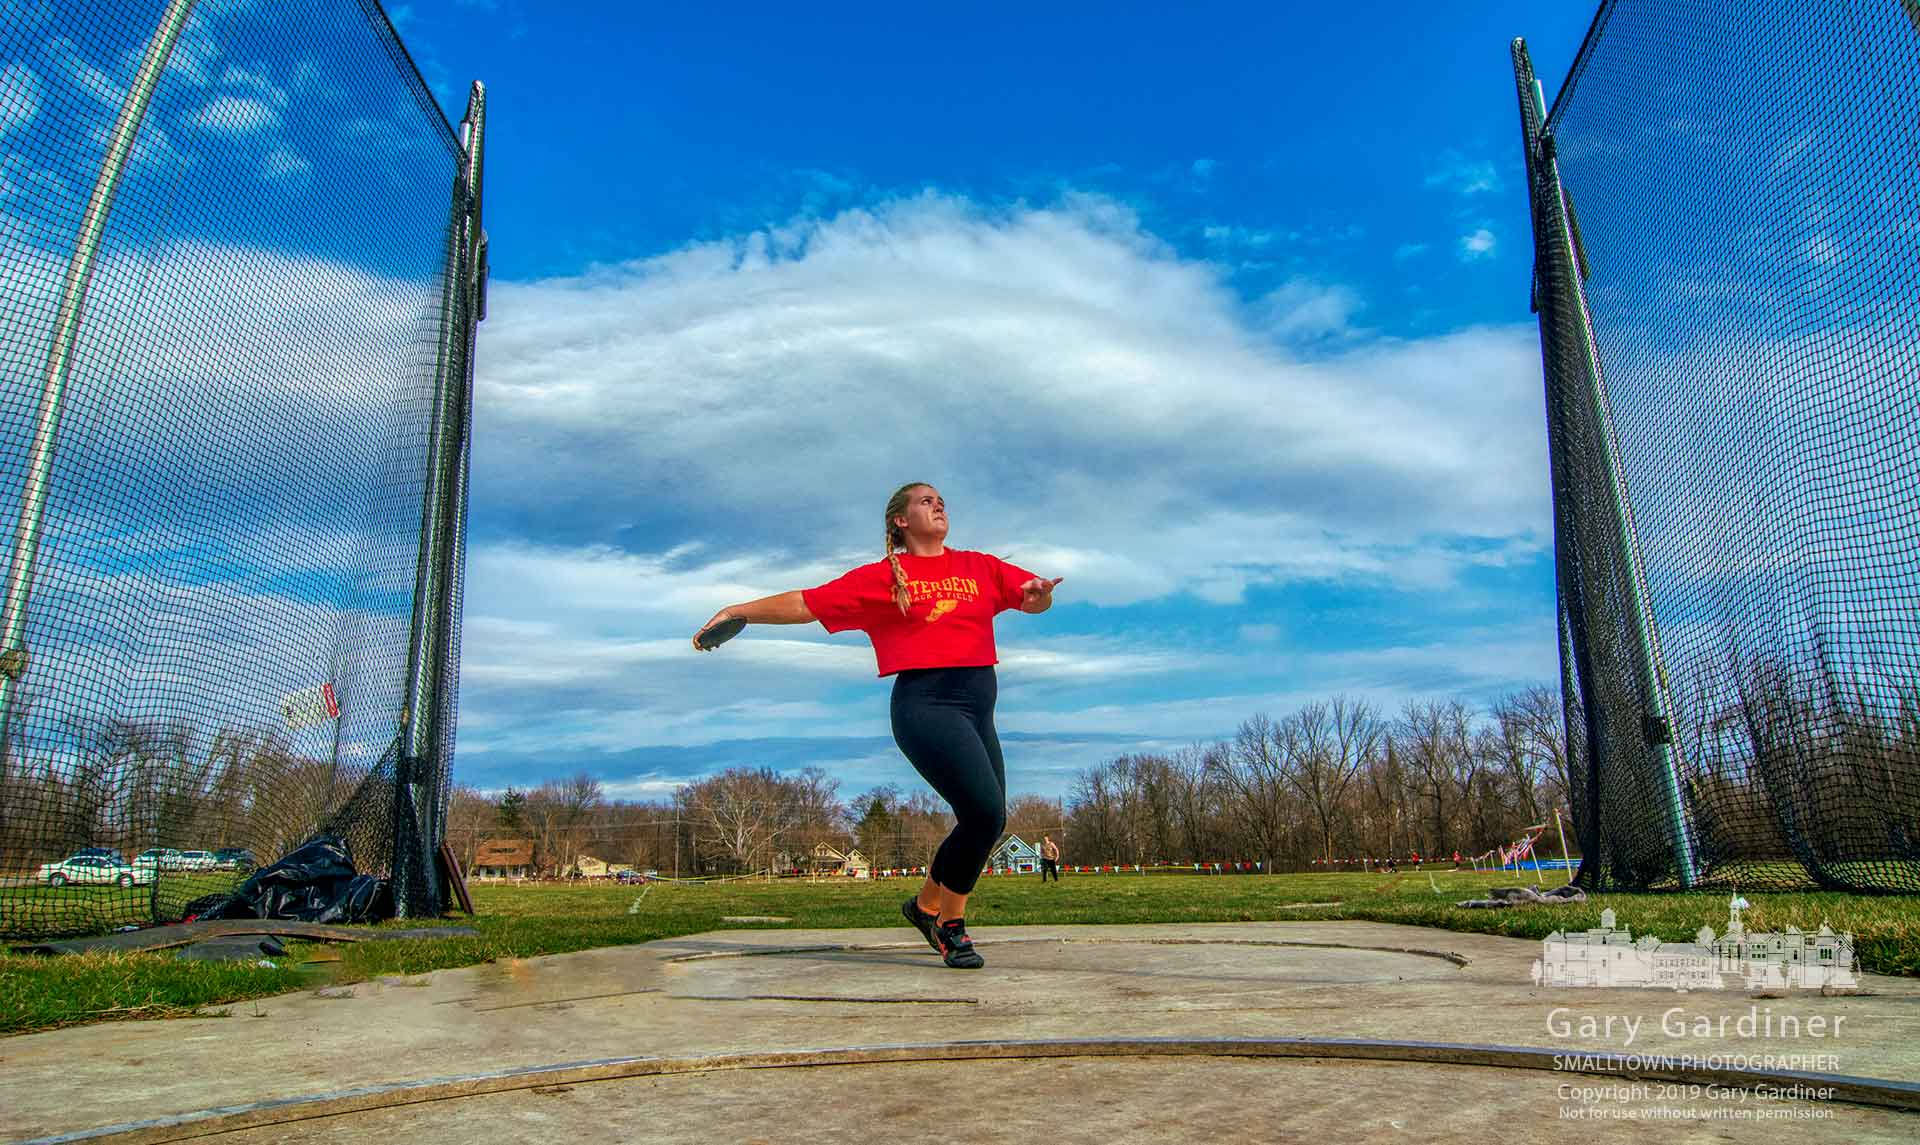 A discus athlete at Otterbein makes her last throws of the day in practice for the opening of the track and field season in two days. My Final Photo for March 28, 2019.